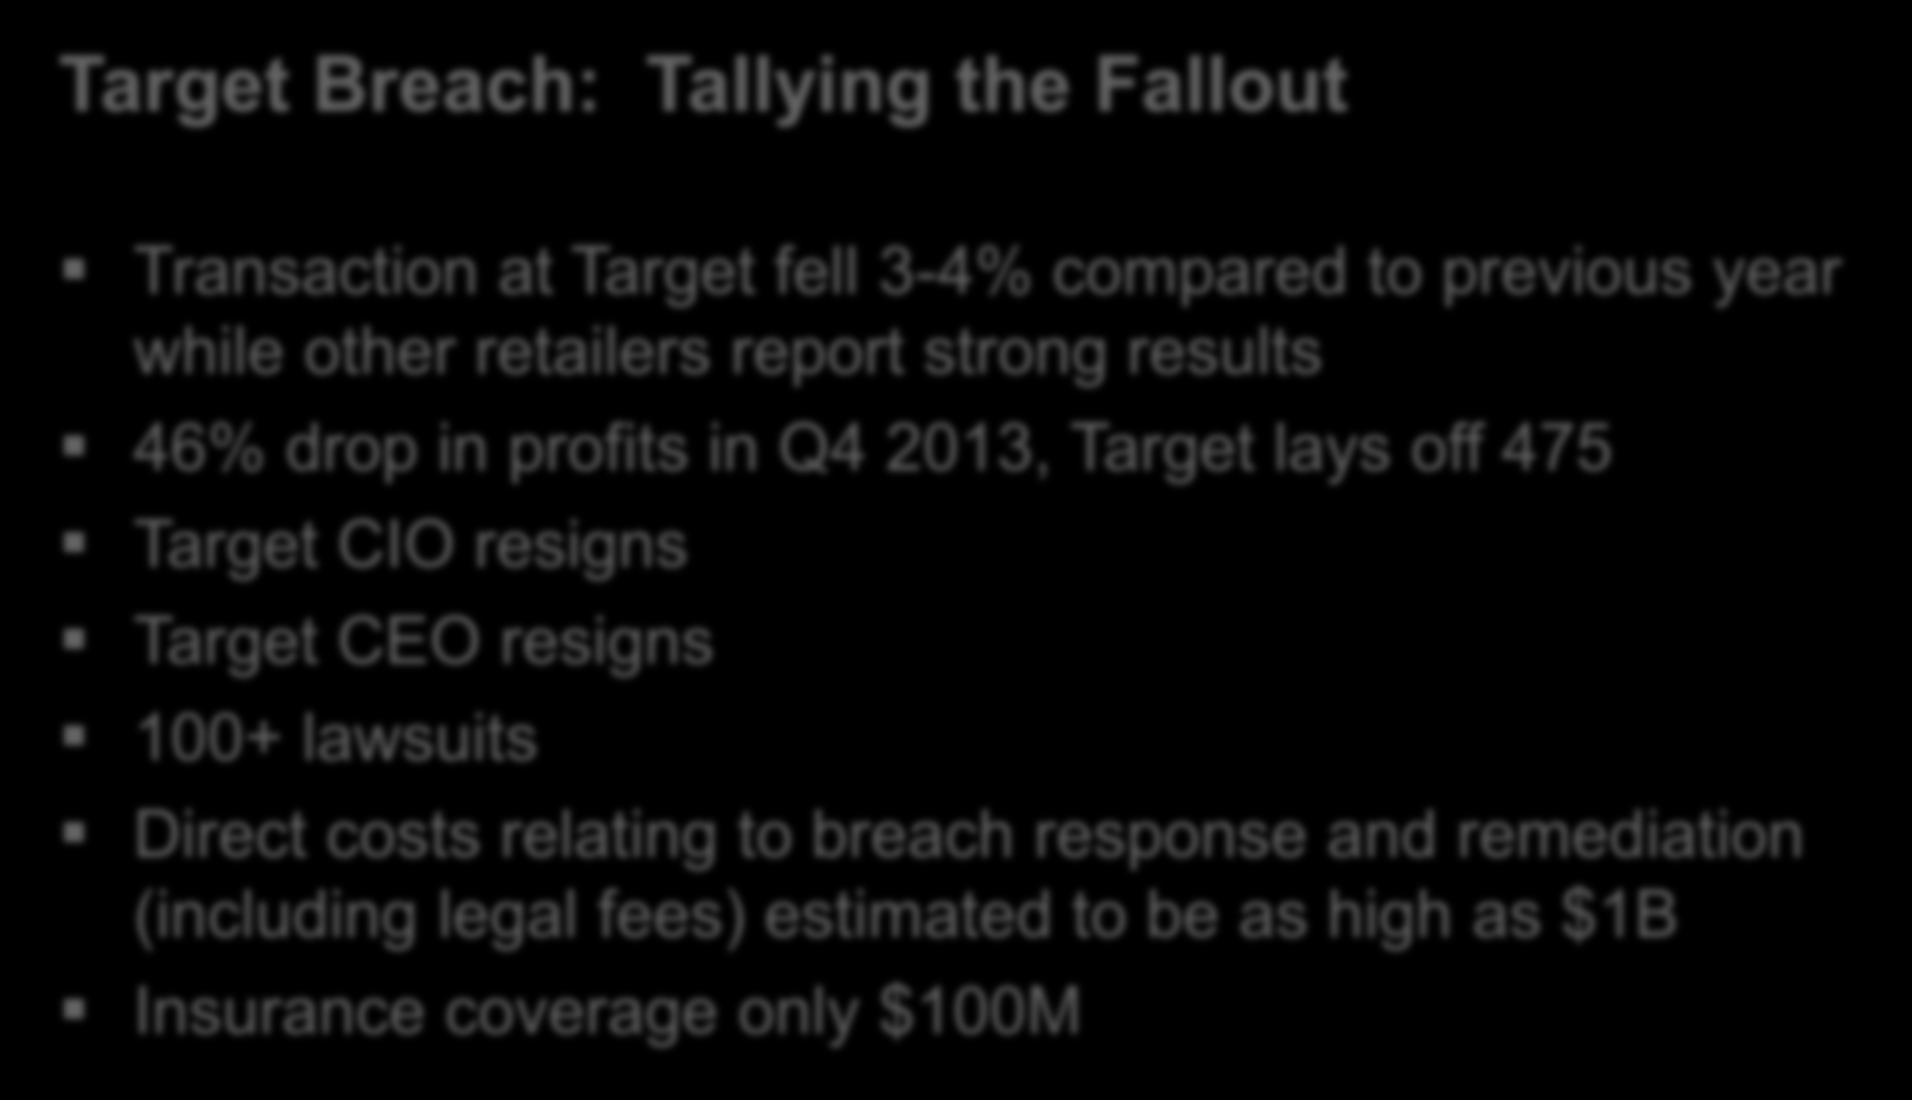 CYBER THREAT LANDSCAPE Lessons Learned from the Target Breach Target Breach: Tallying the Fallout Transaction at Target fell 3-4% compared to previous year while other retailers report strong results